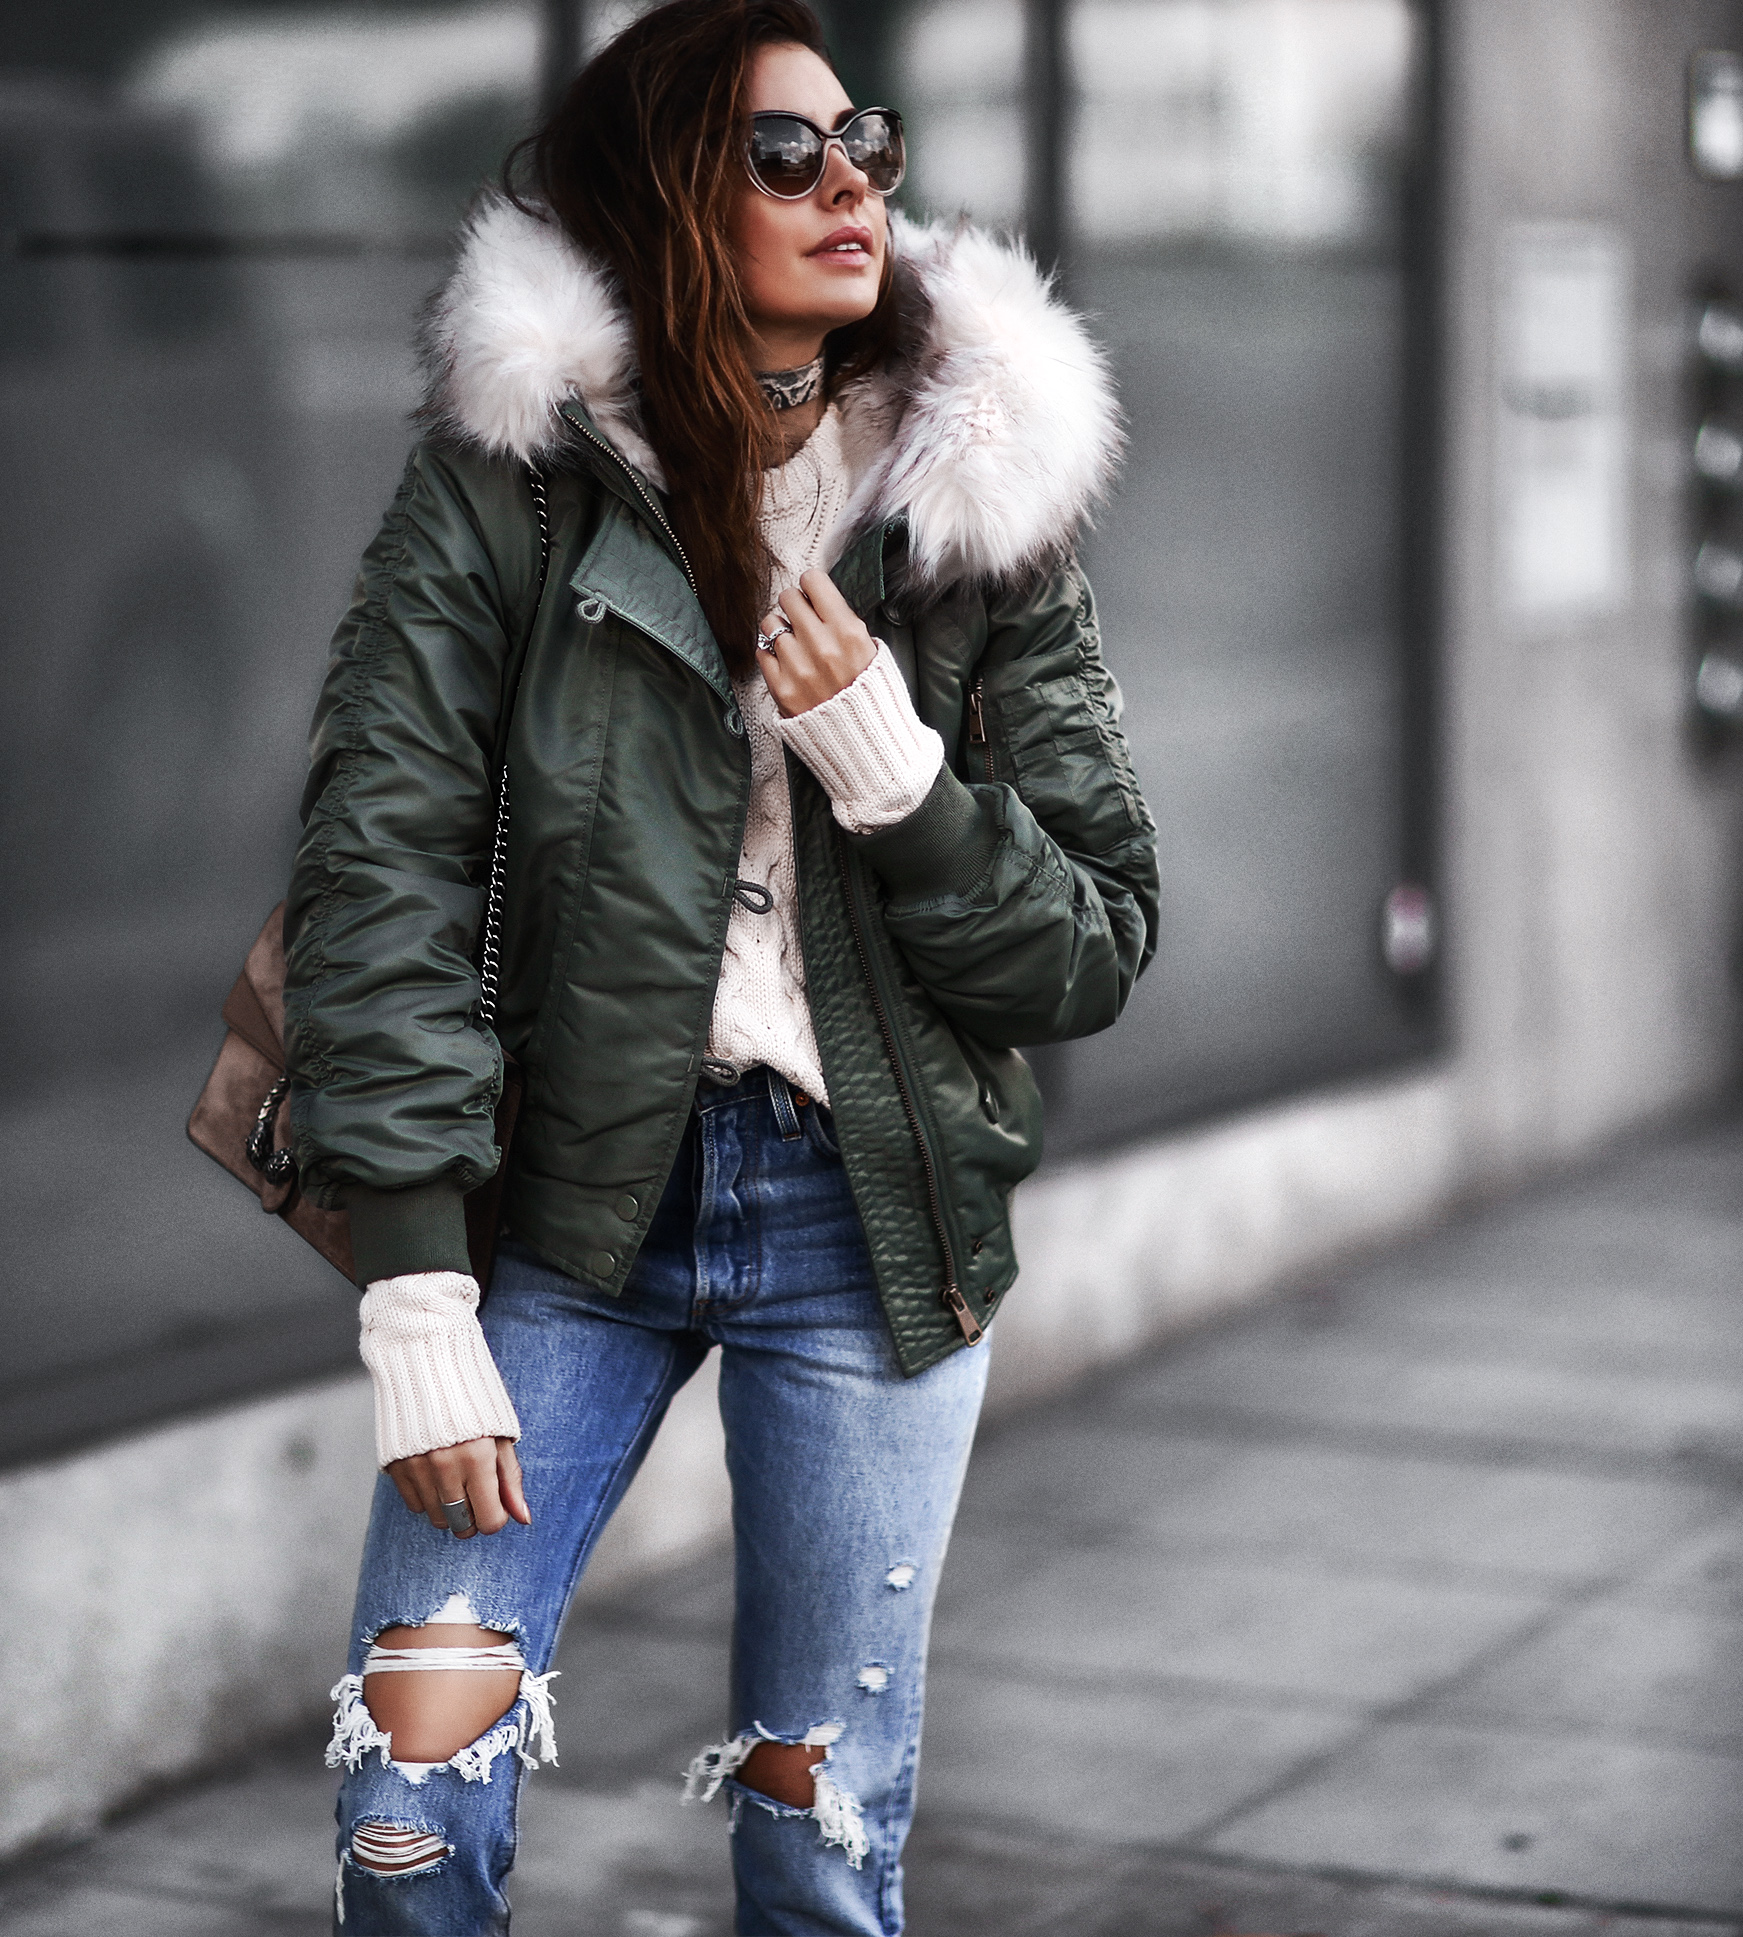 cozy army green fur coat and ripped jeans